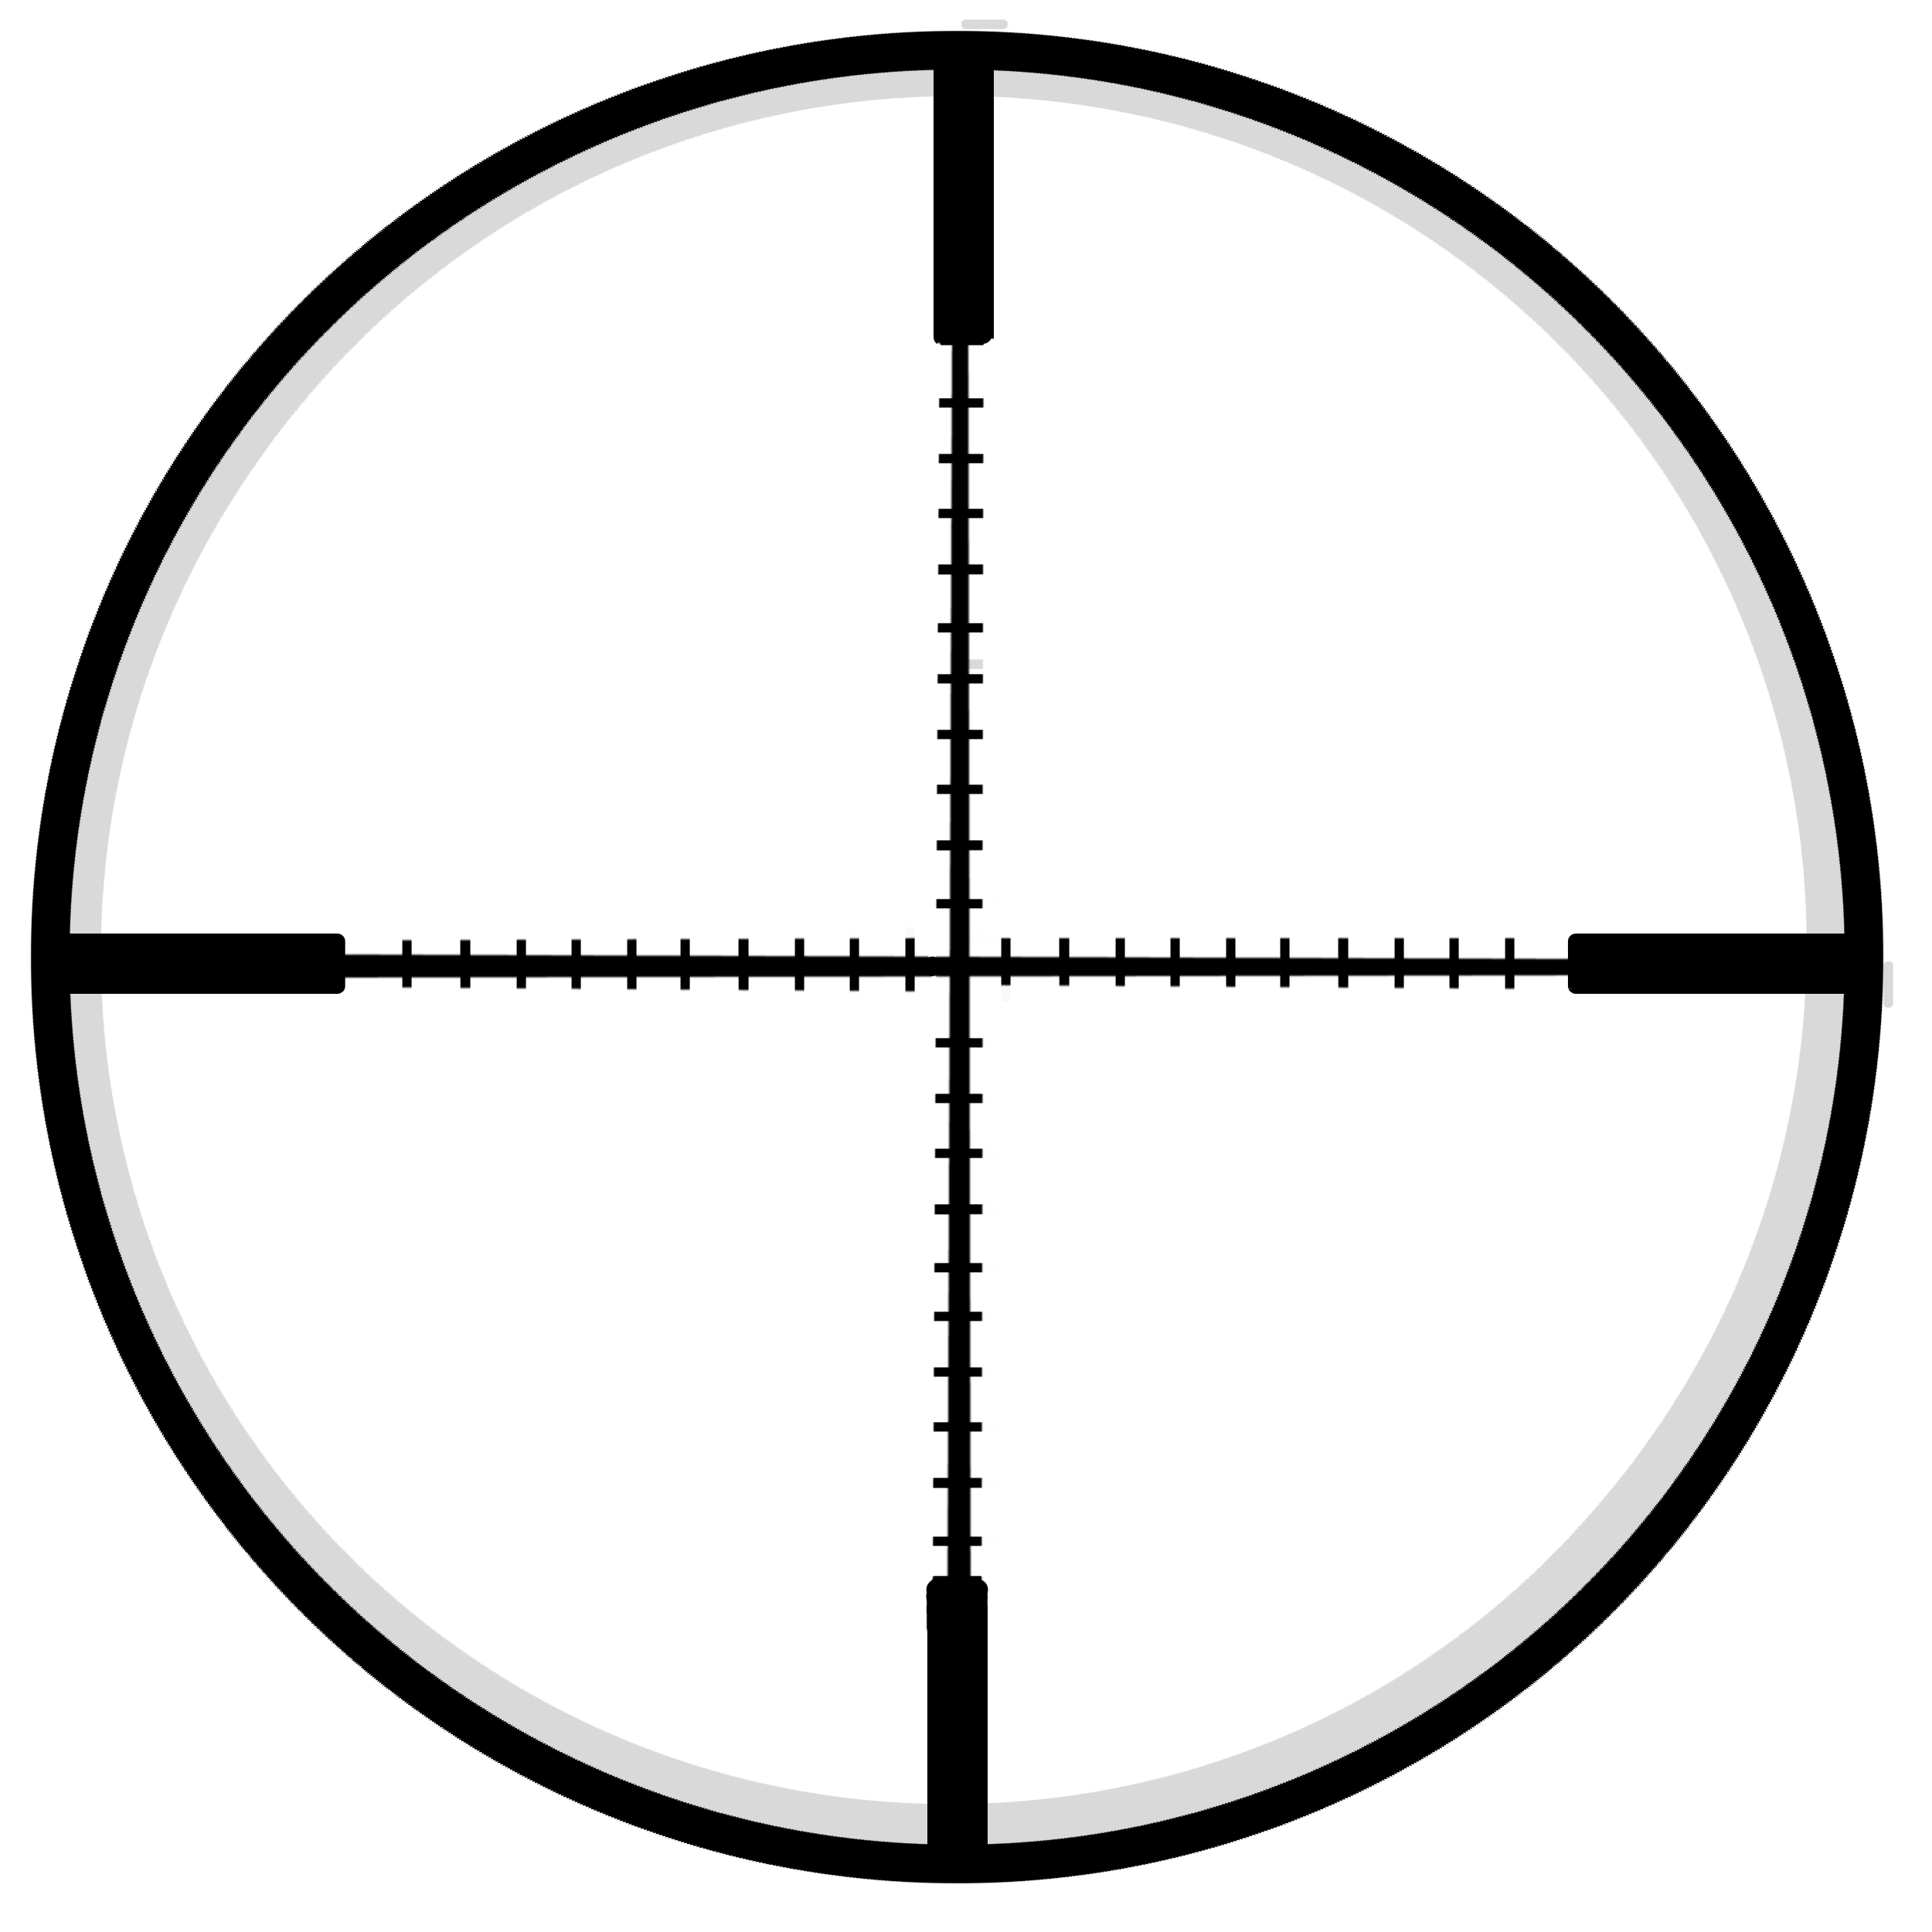 rifle crosshairs png